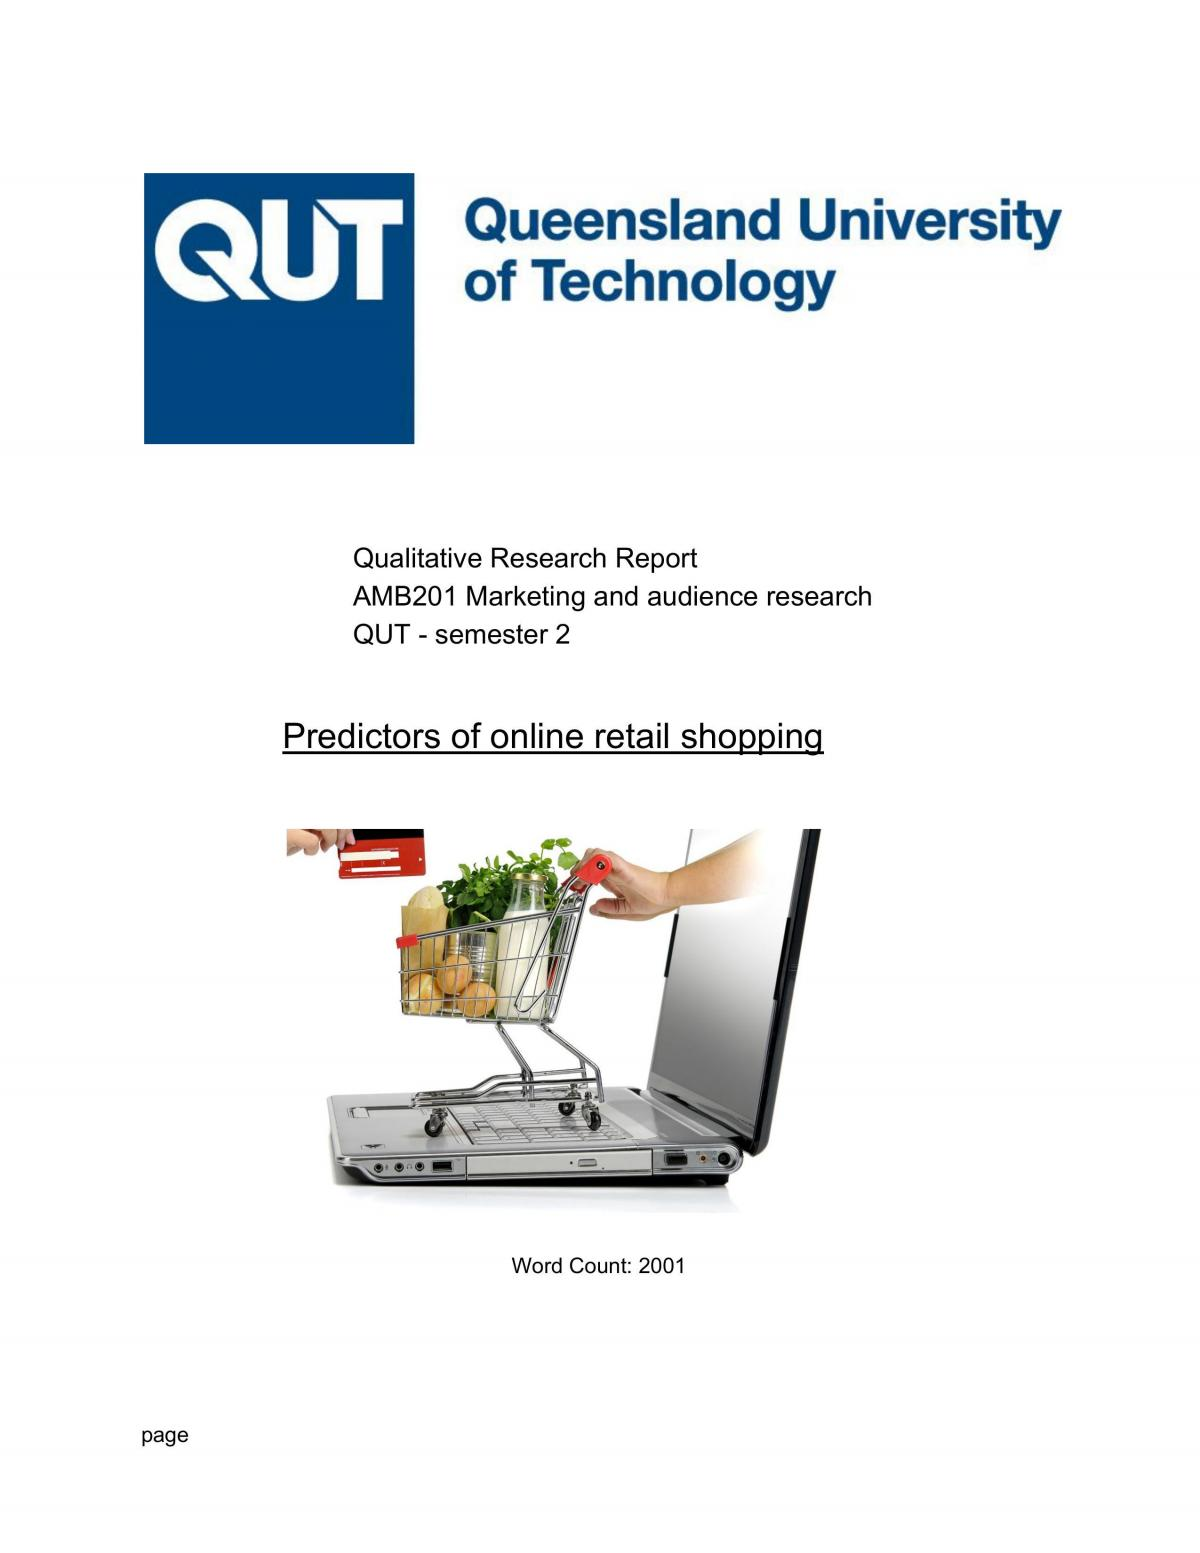 AMB201 Qualitative Research Report - Page 1